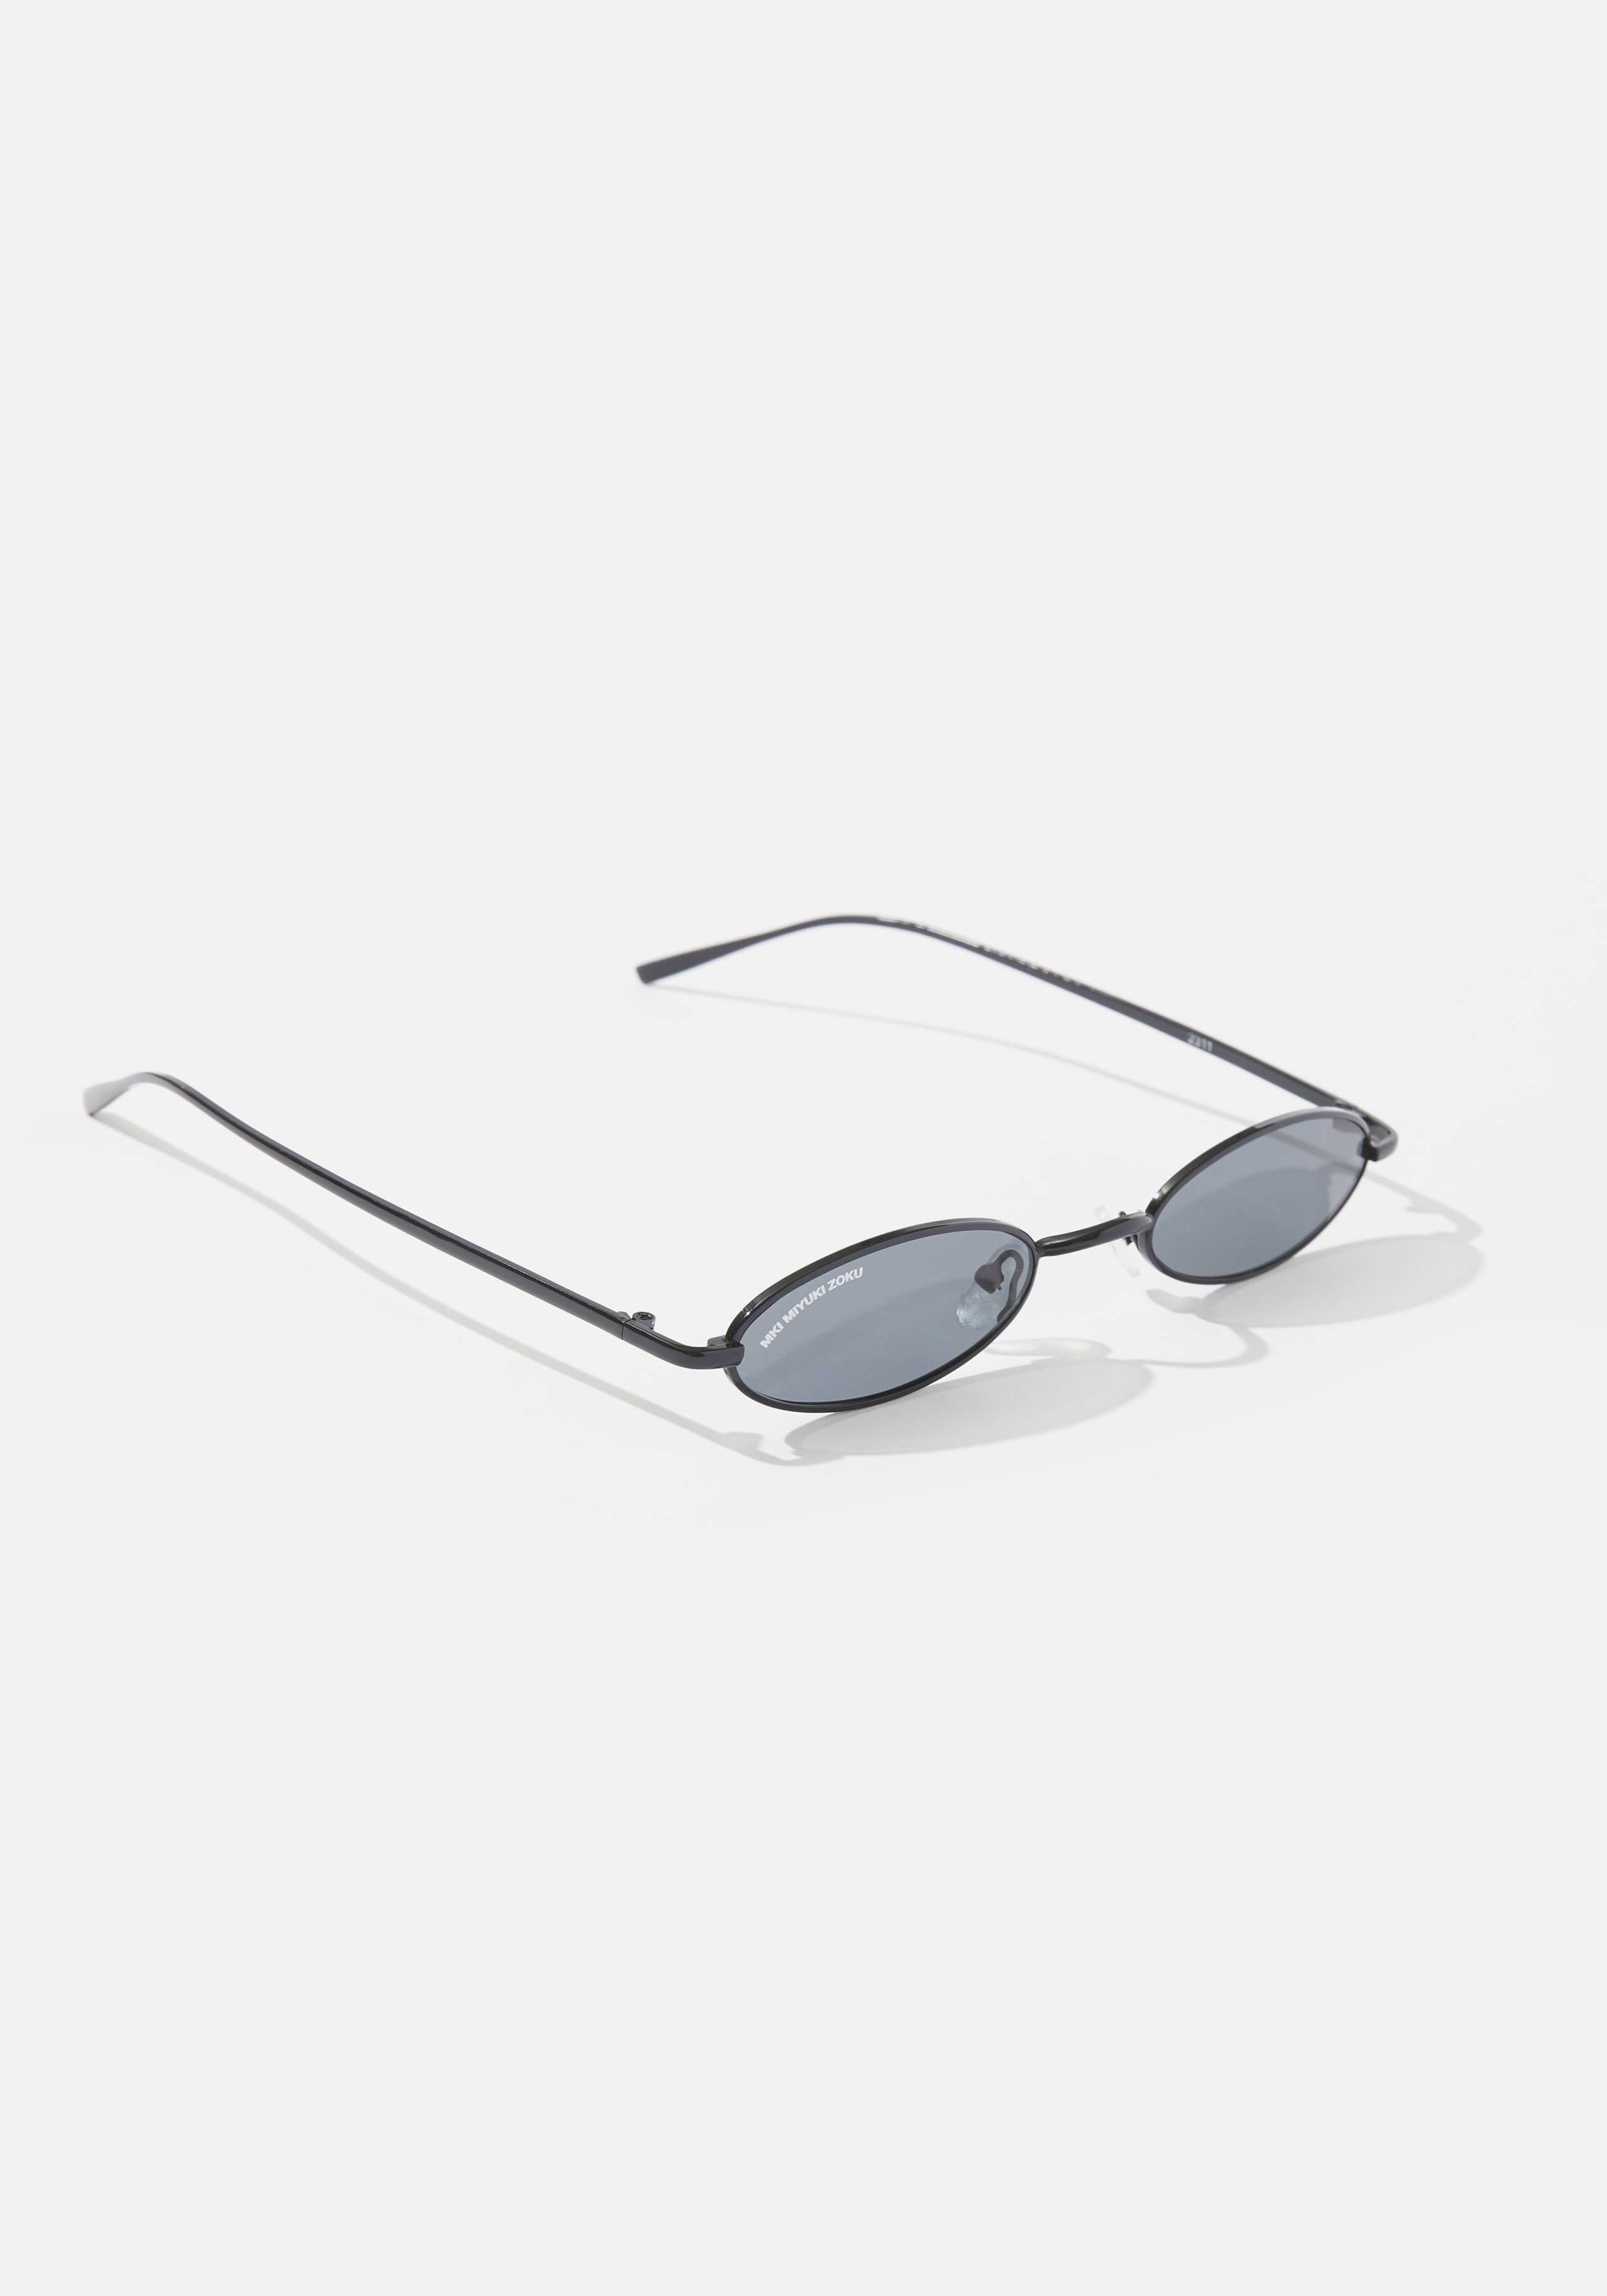 mki metal oval sunglasses 2